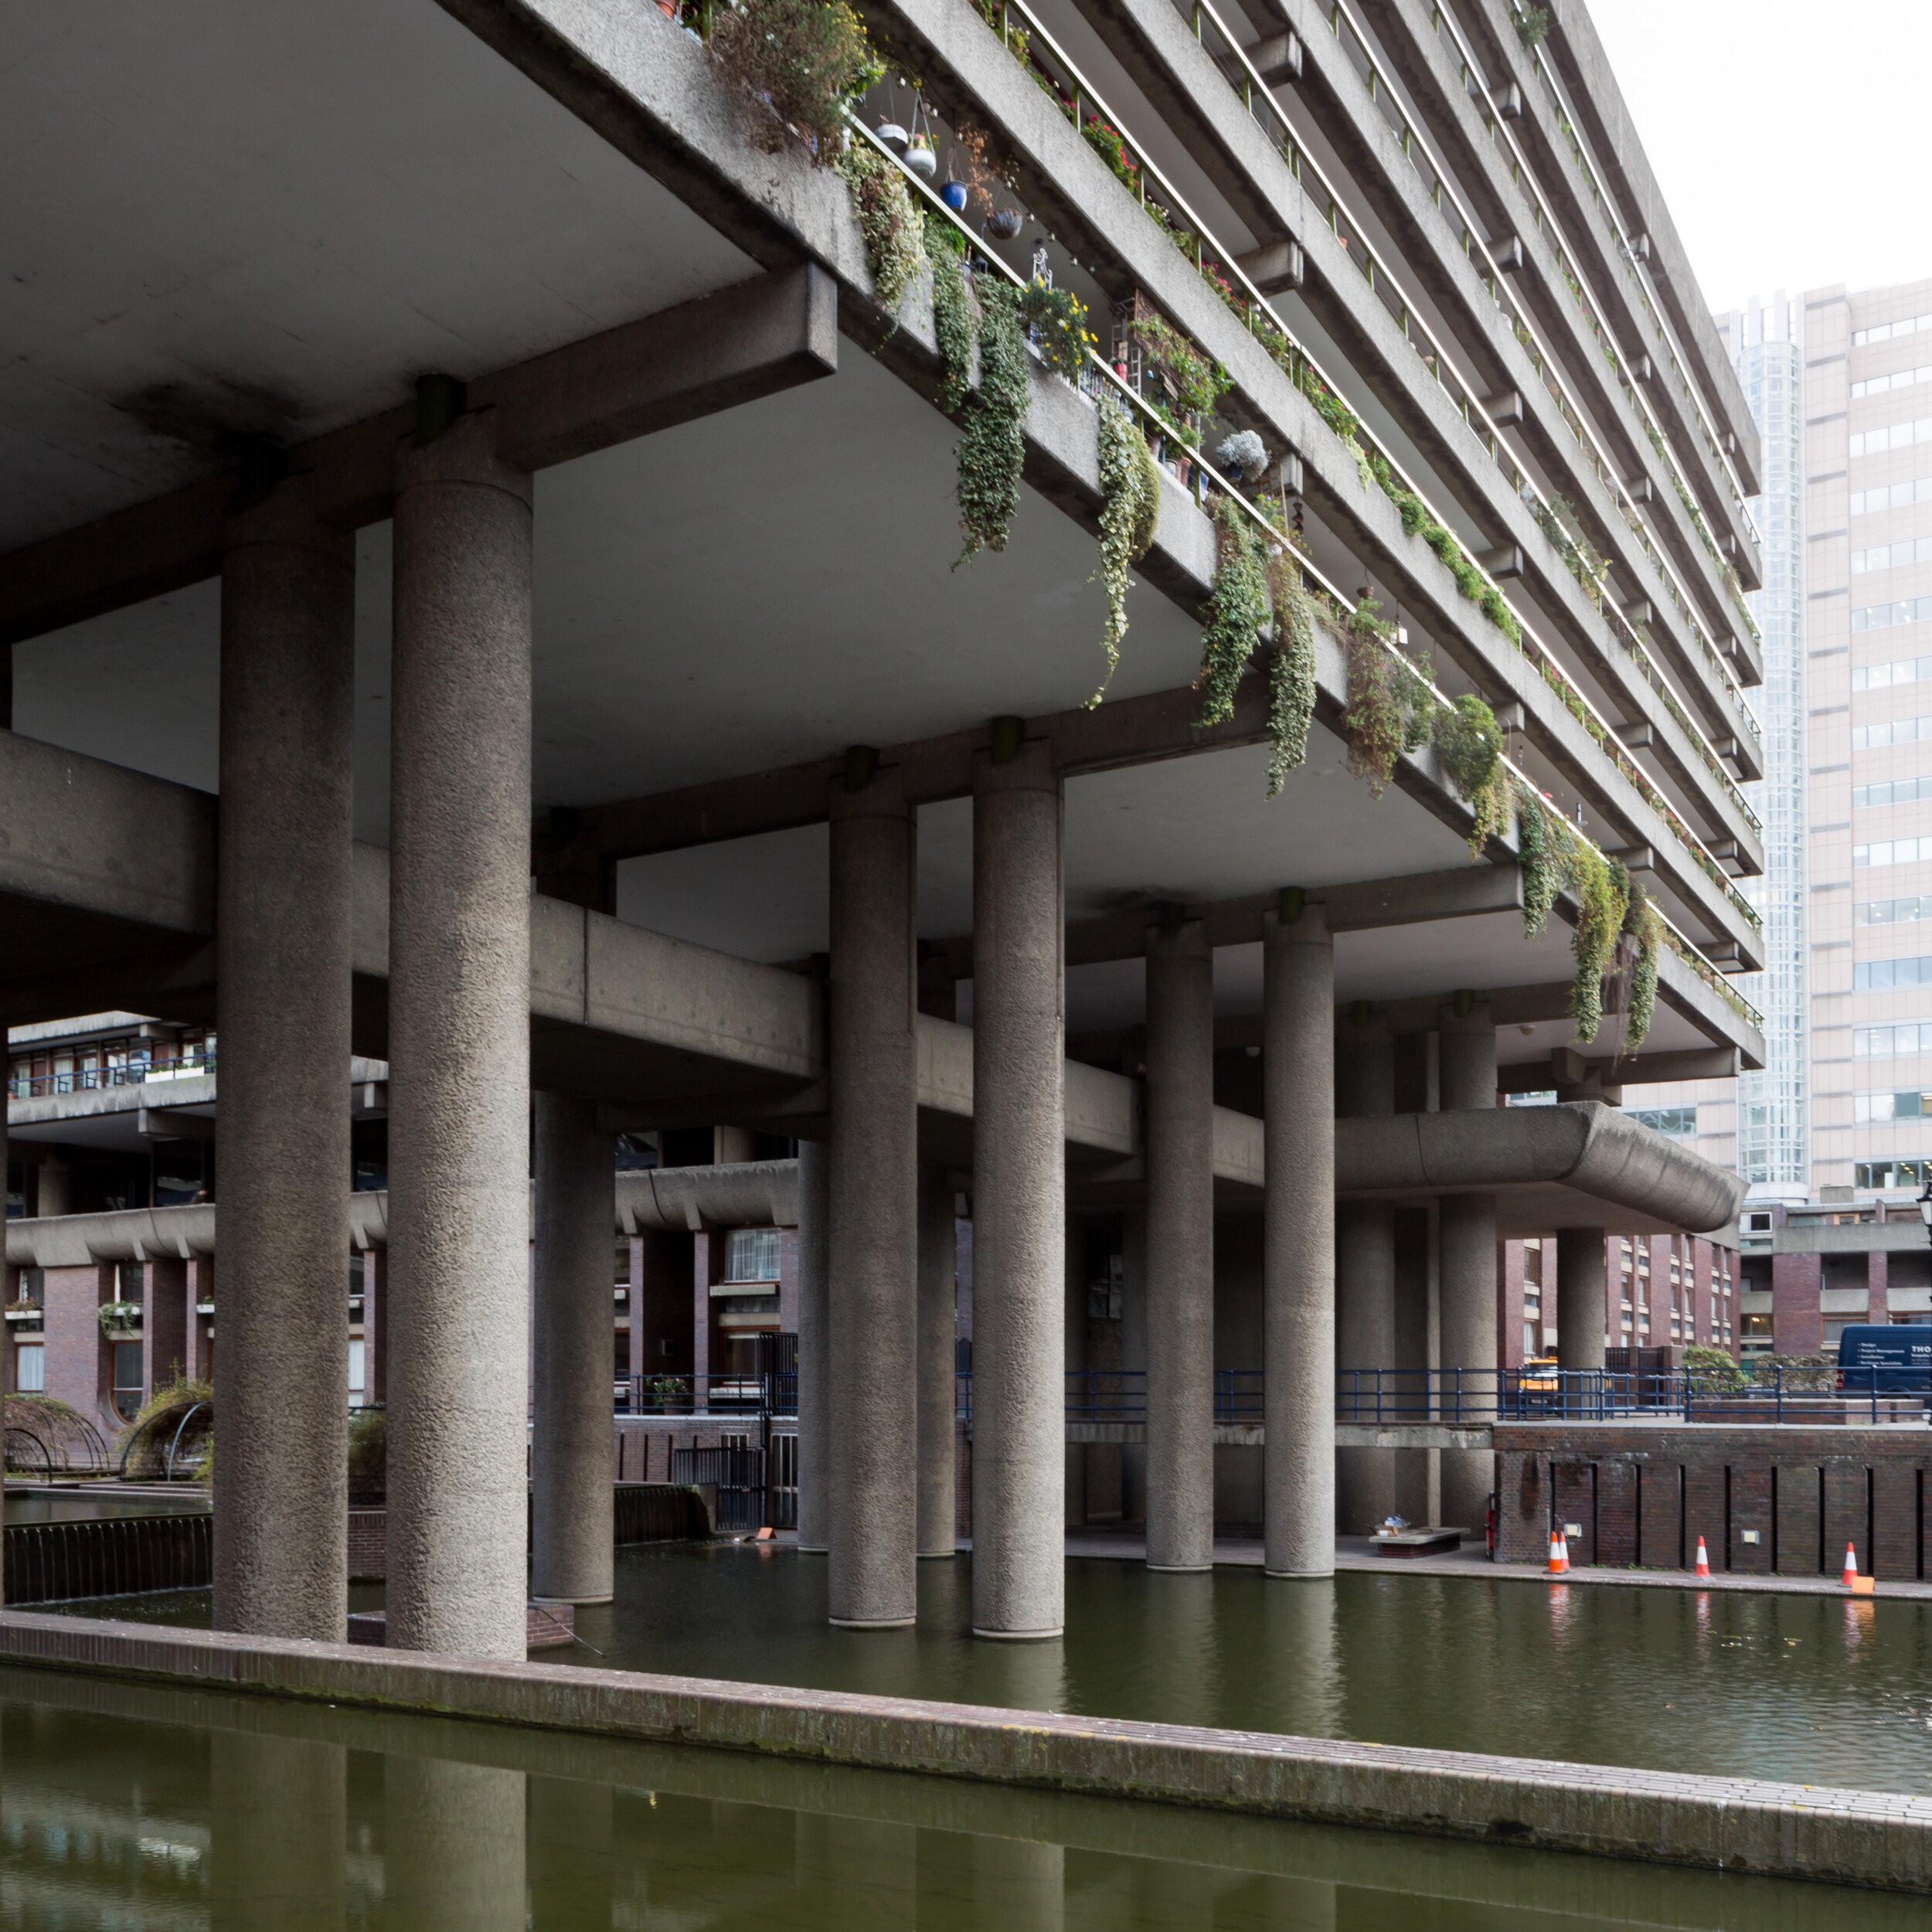 The Barbican Center 180125 223.jpg